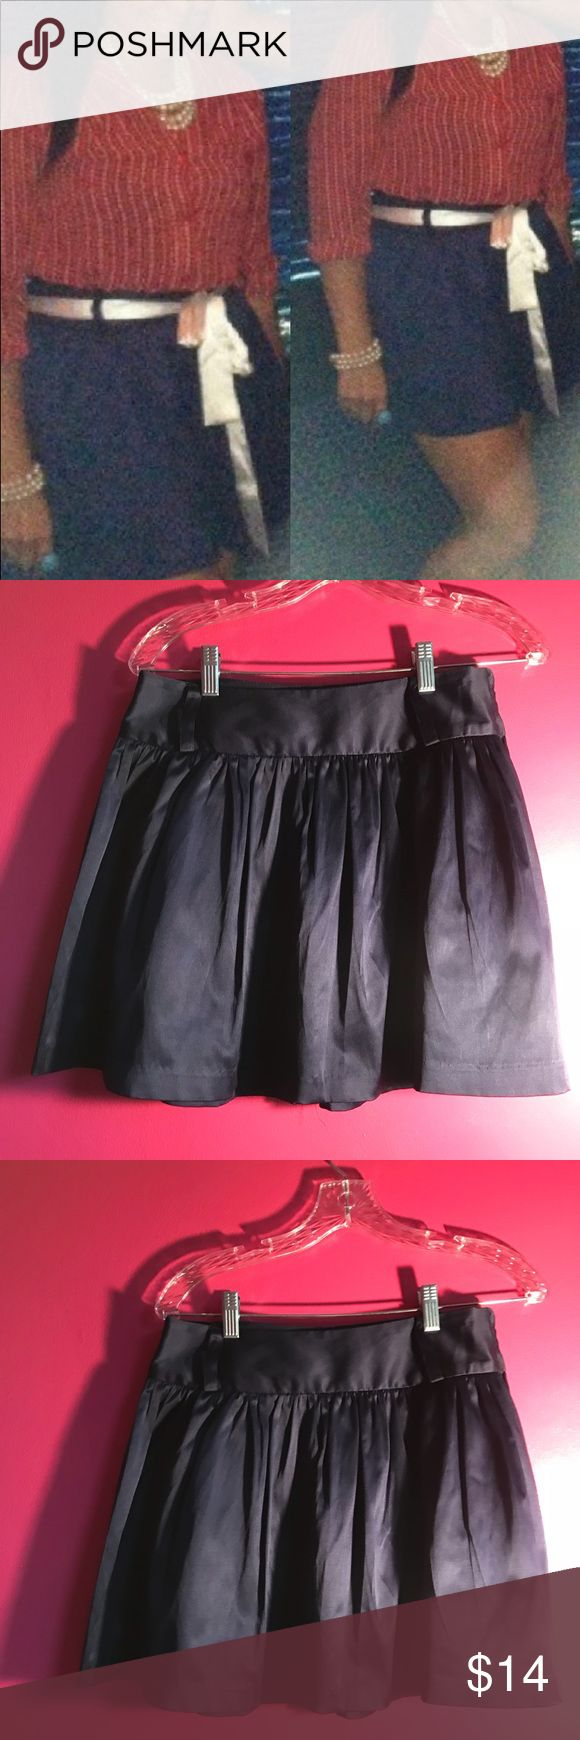 Forever 21 dark navy satin mini skirt szM Hey all! I am selling this cute mini skirt from forever 21. The skirt is a dark navy color as seen in the picture. It also has belt straps so it is great to pair with any color belt. Please note I am not including any belt with this skirt.   Length: 15 Width: 16  Let me know if you have questions! Forever 21 Skirts Mini